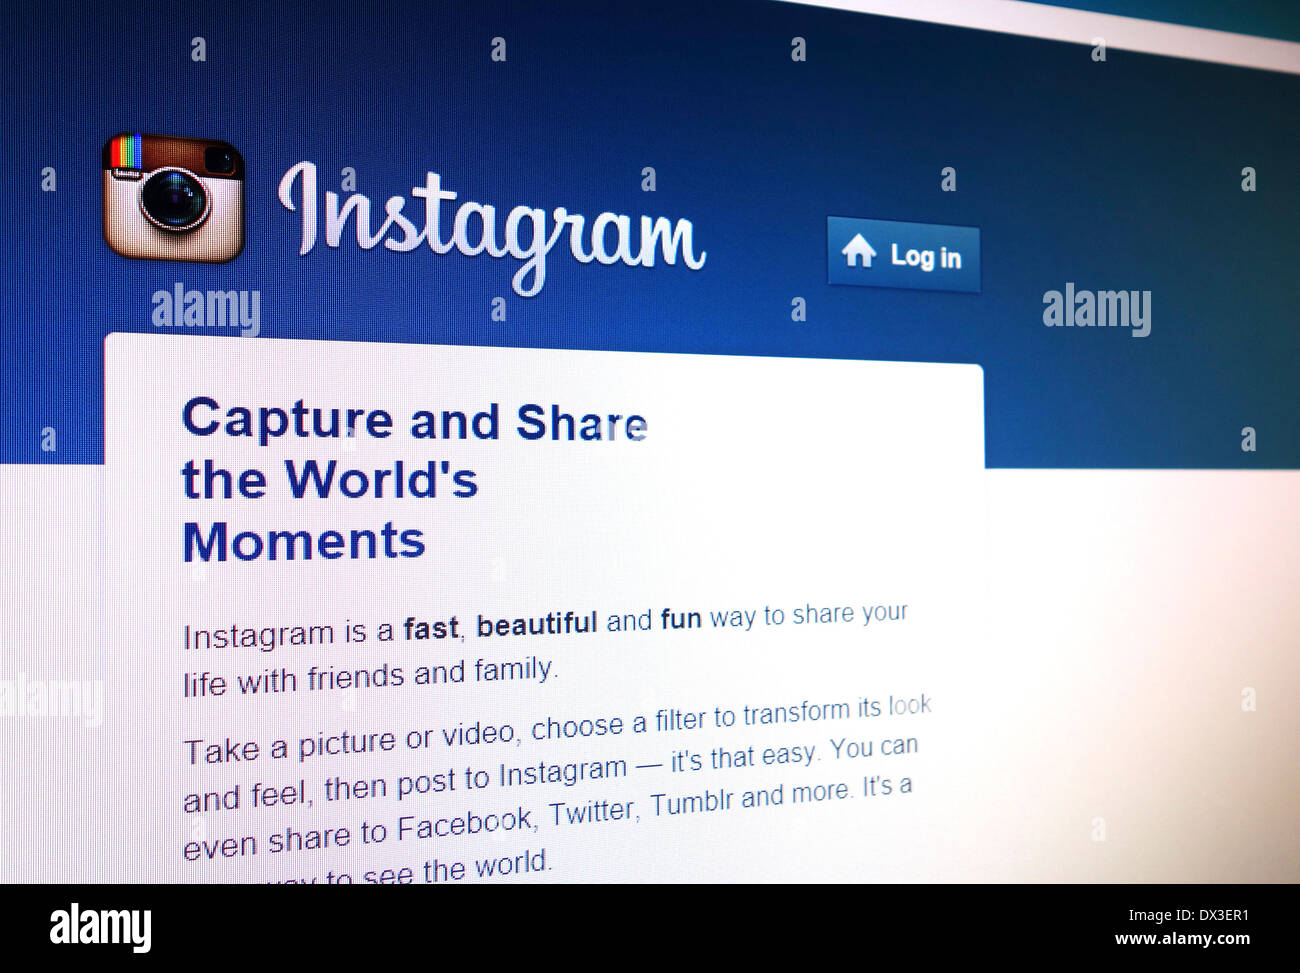 Instagram photo sharing website - Stock Image